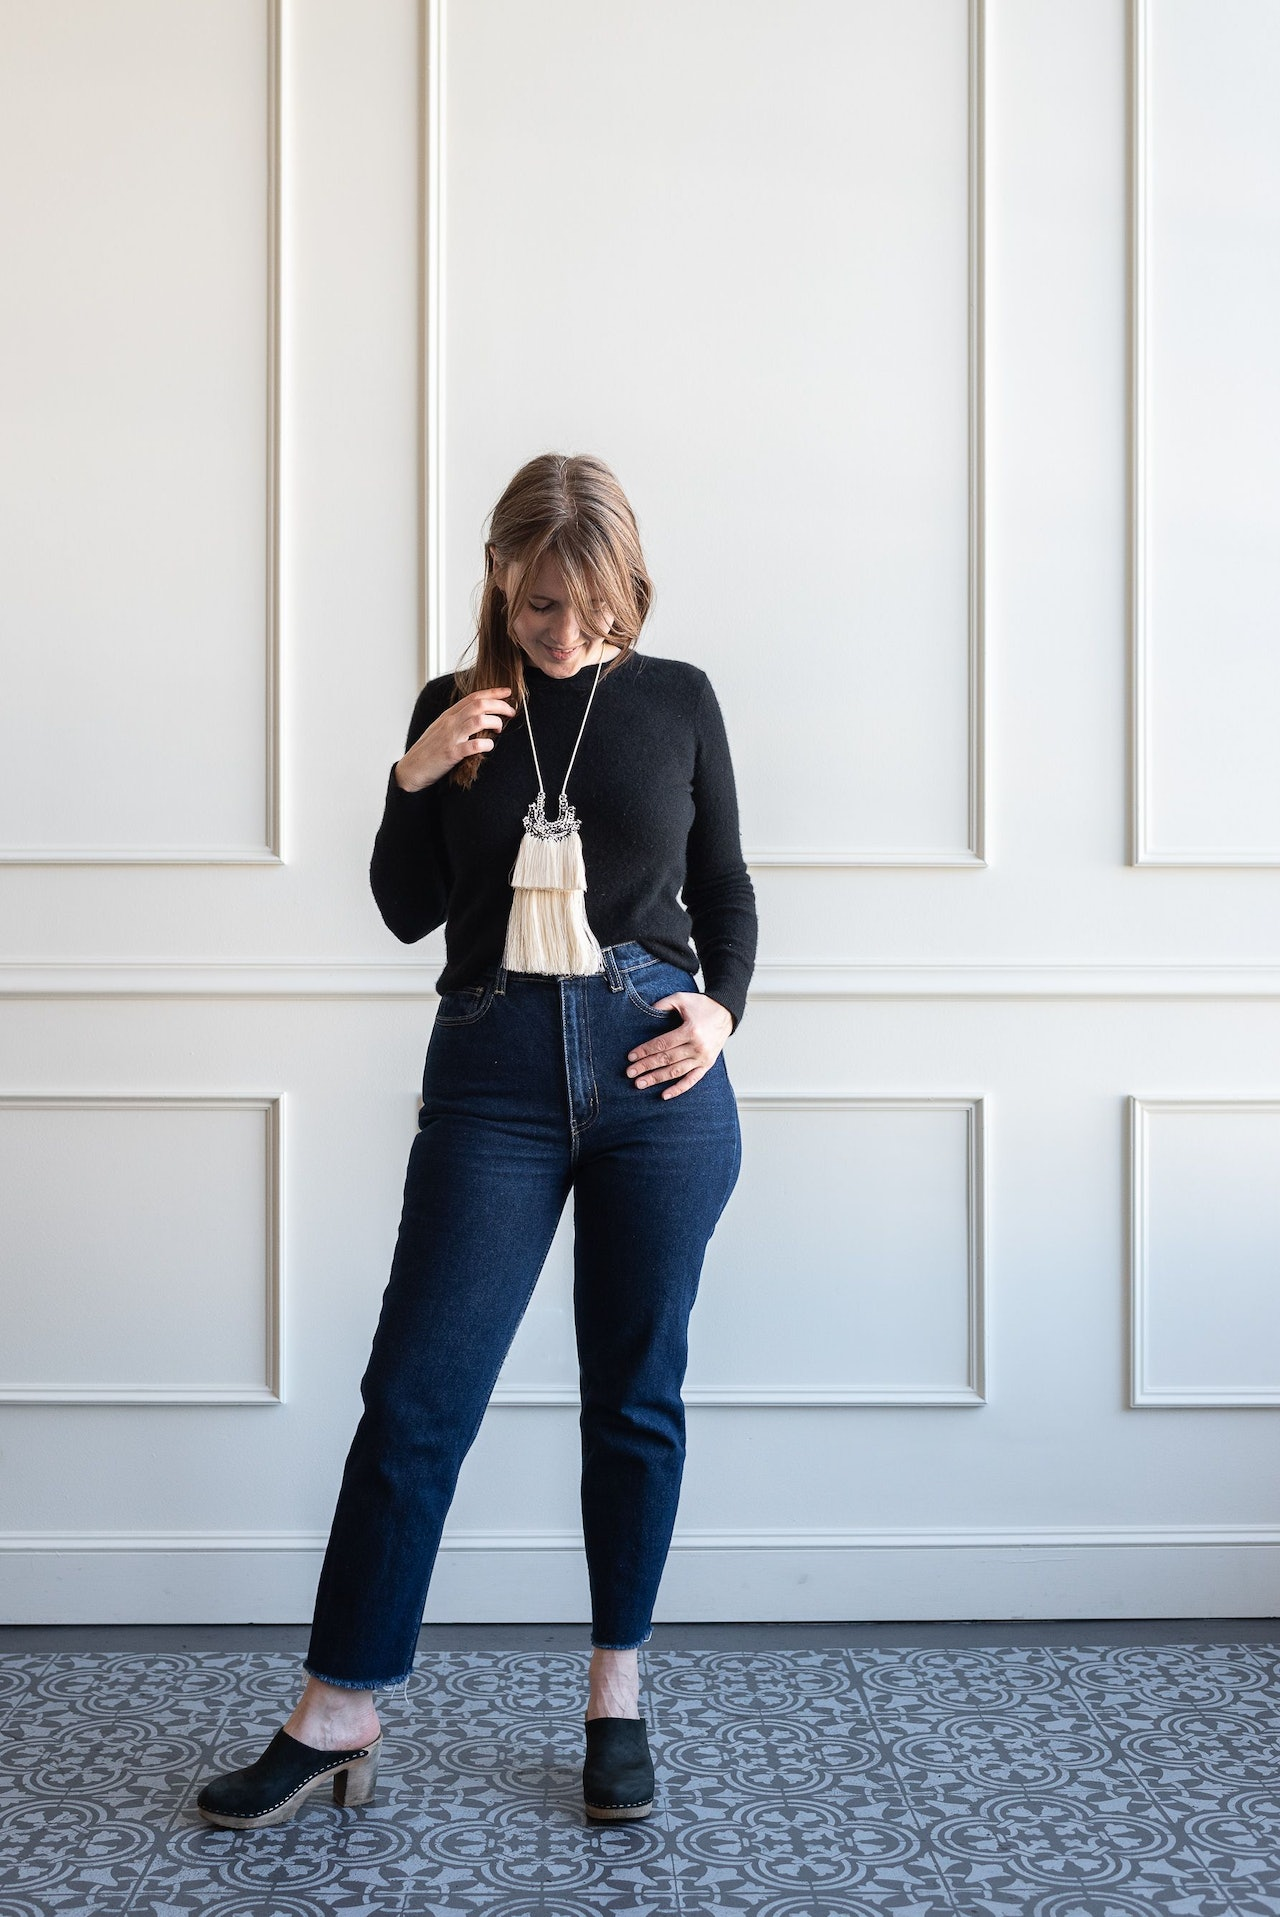 Fall 10x10 Day 8 Look - Everlane Black Cashmere Sweater & Nina Z Black Clogs by Conscious by Chloé